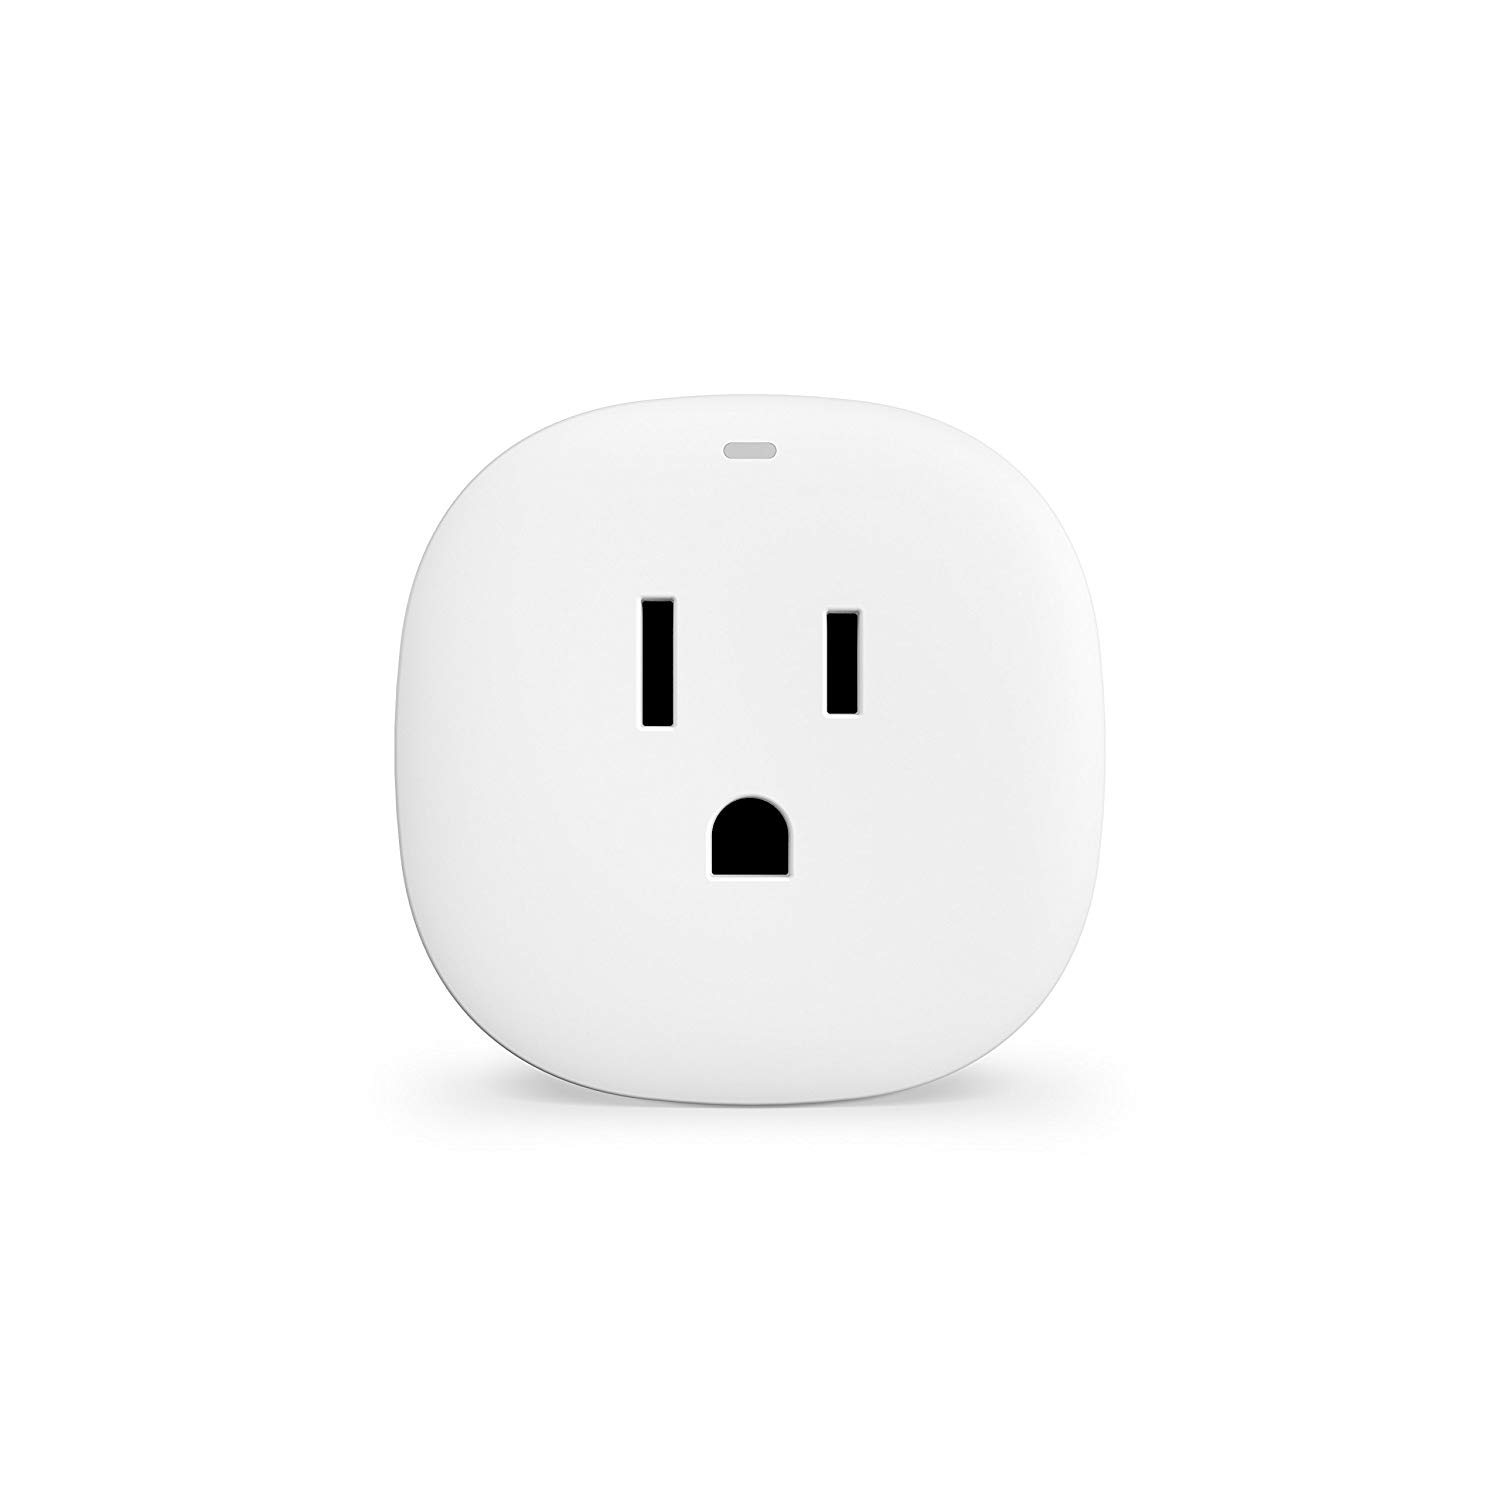 Samsung Smartthings Outlet Limota Vn Cung Cấp Thiết Bị